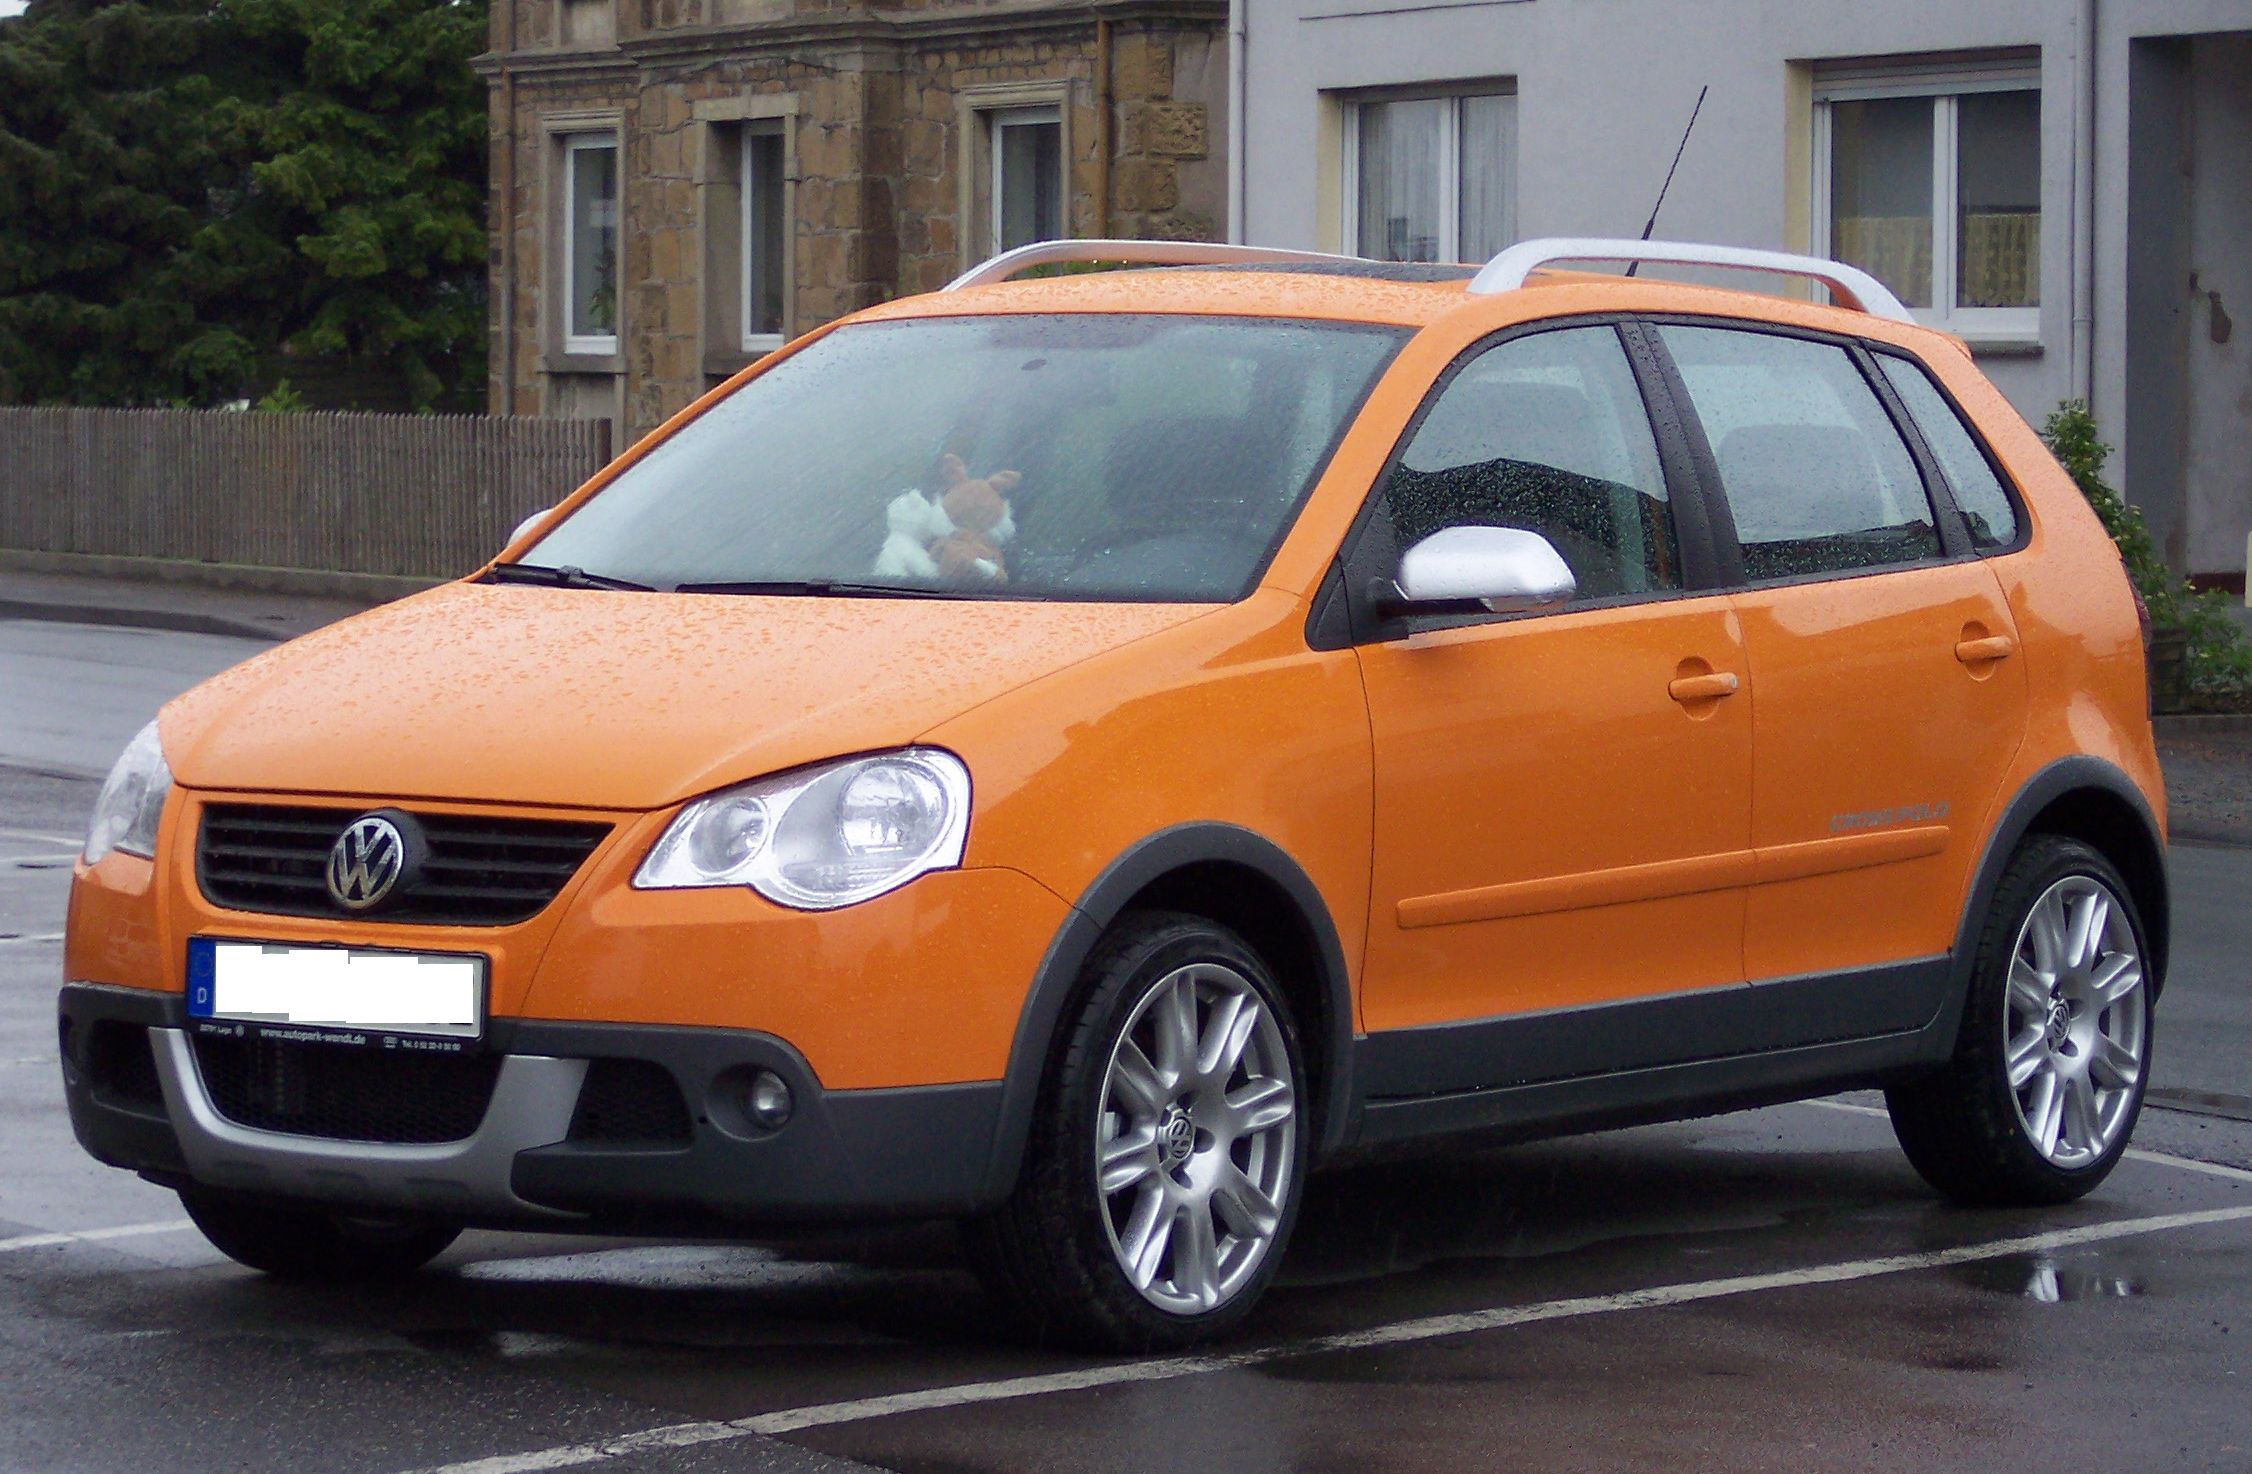 volkswagen polo review and photos. Black Bedroom Furniture Sets. Home Design Ideas